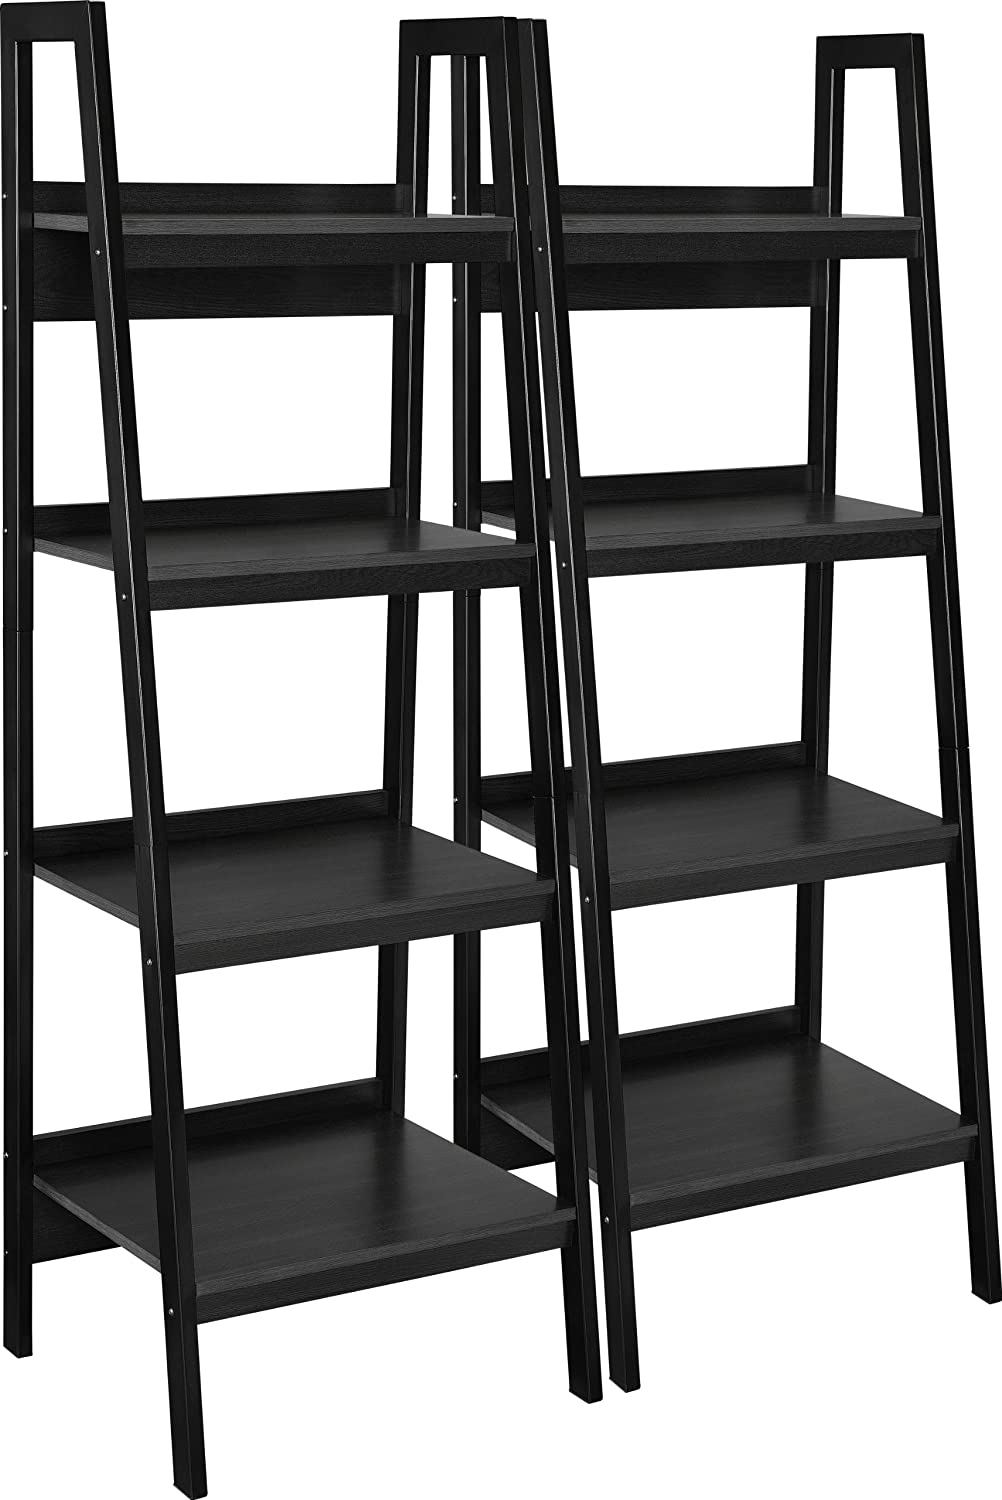 Amazon.com: Ameriwood Home Lawrence 4 Shelf Ladder Bookcase Bundle ...